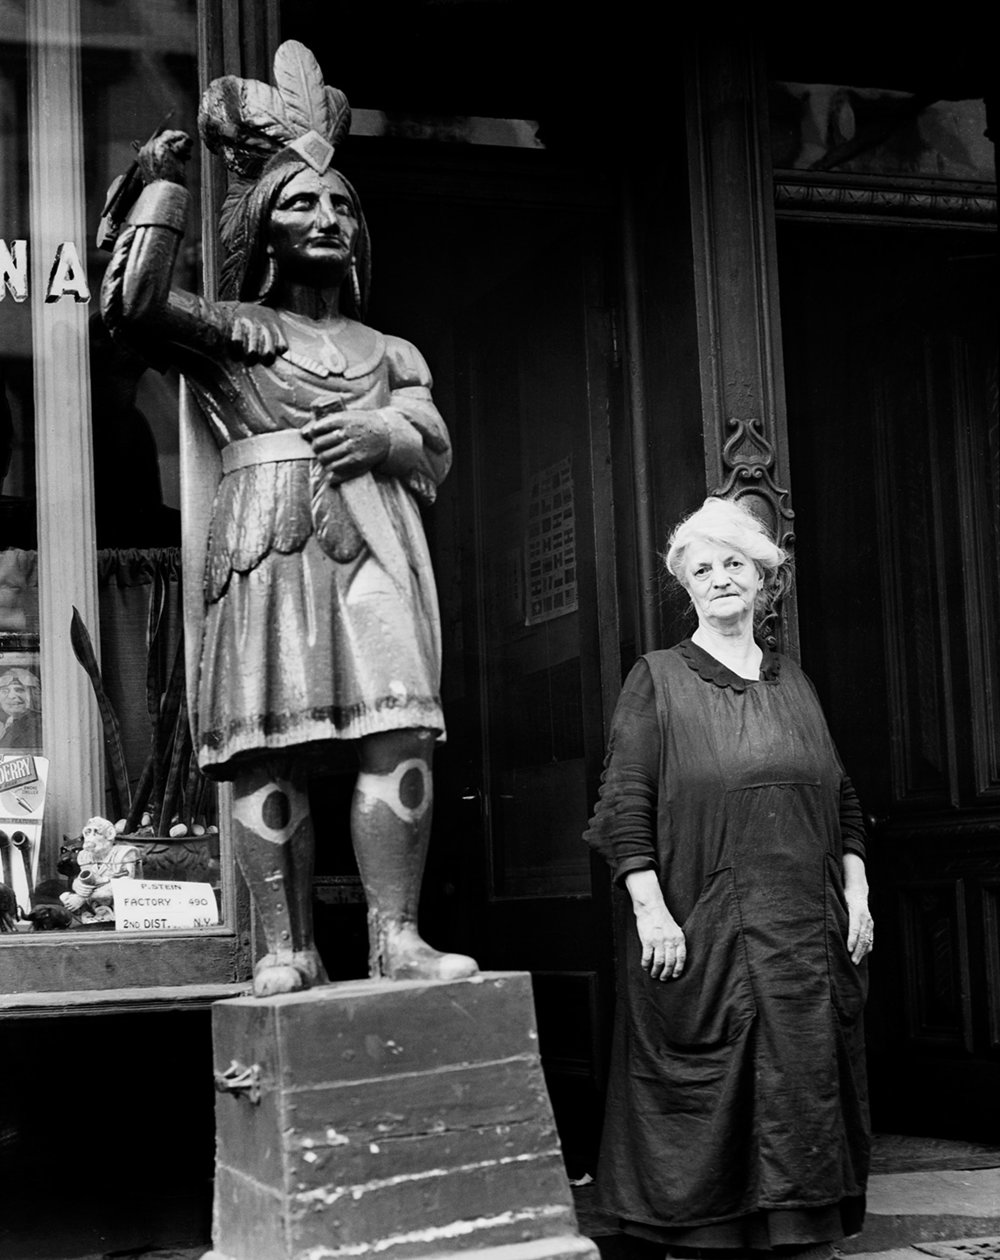 Cigar store owner with wooden Indian, East 7th Street and First Avenue, 1939. Photograph by Sam Brody, WPA Federal Writers' Project collection, NYC Municipal Archives.